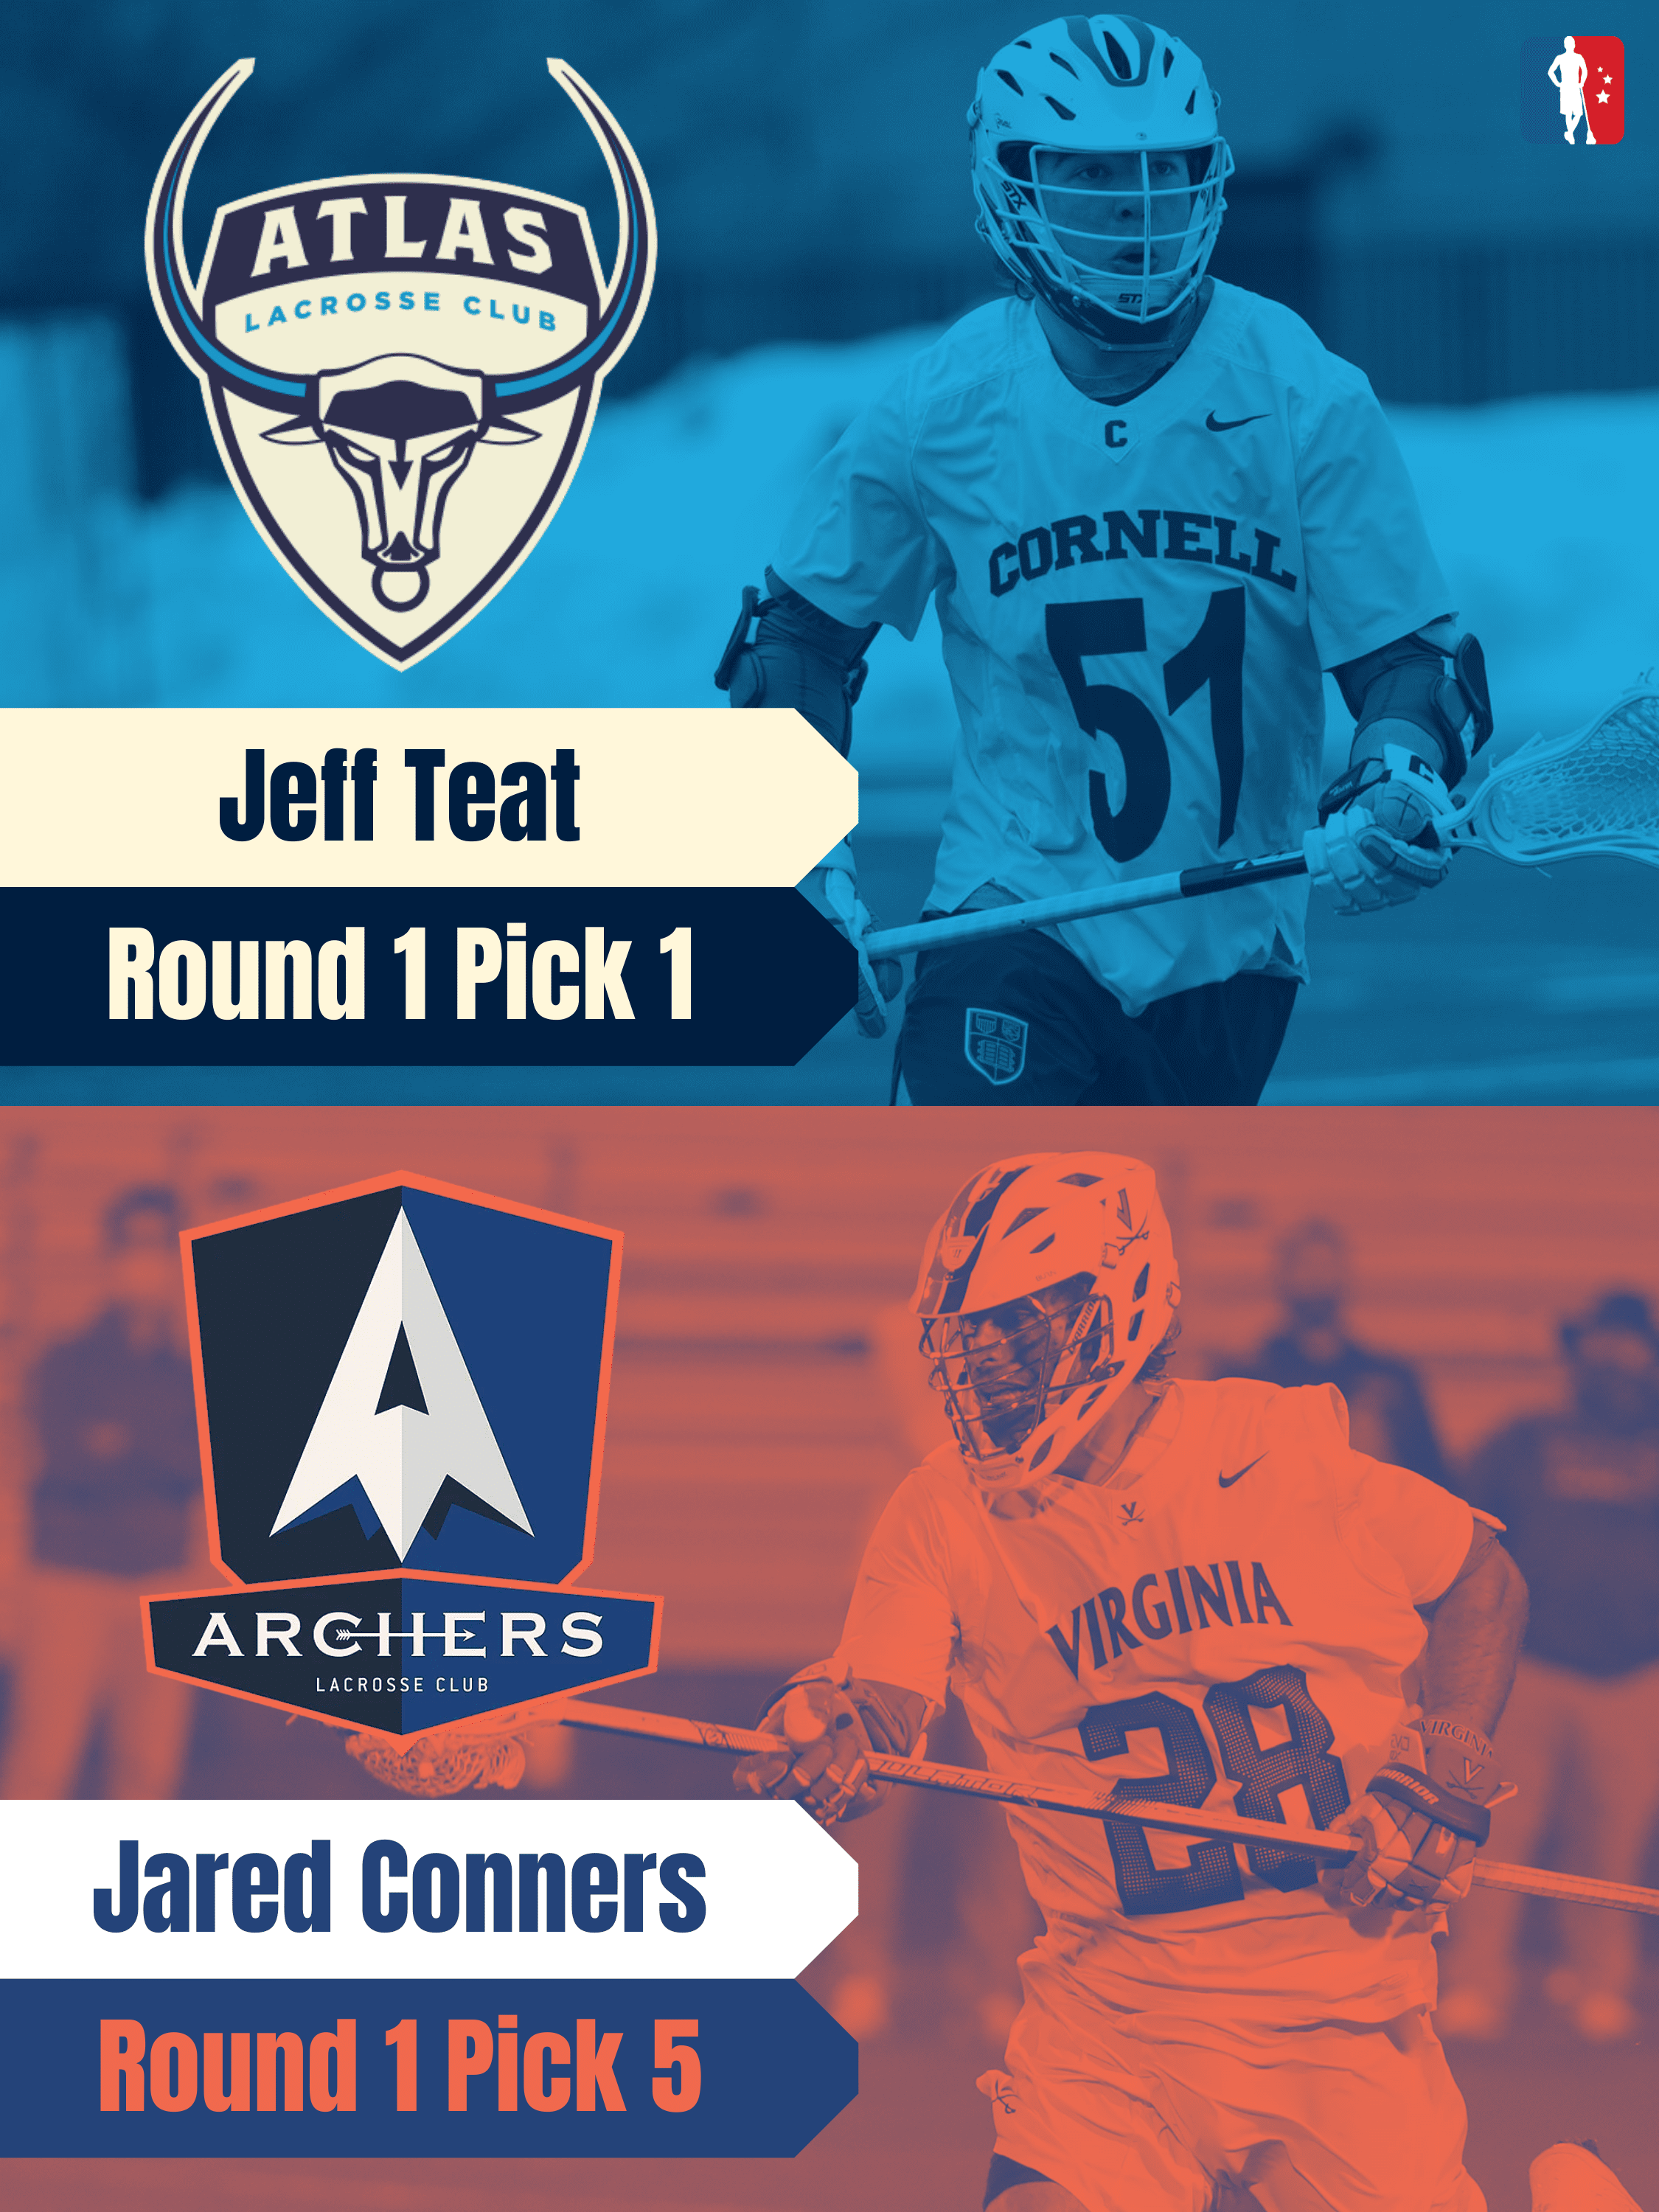 Jeff Teat Jared Conners 2021 PLL Rookie Spotlights